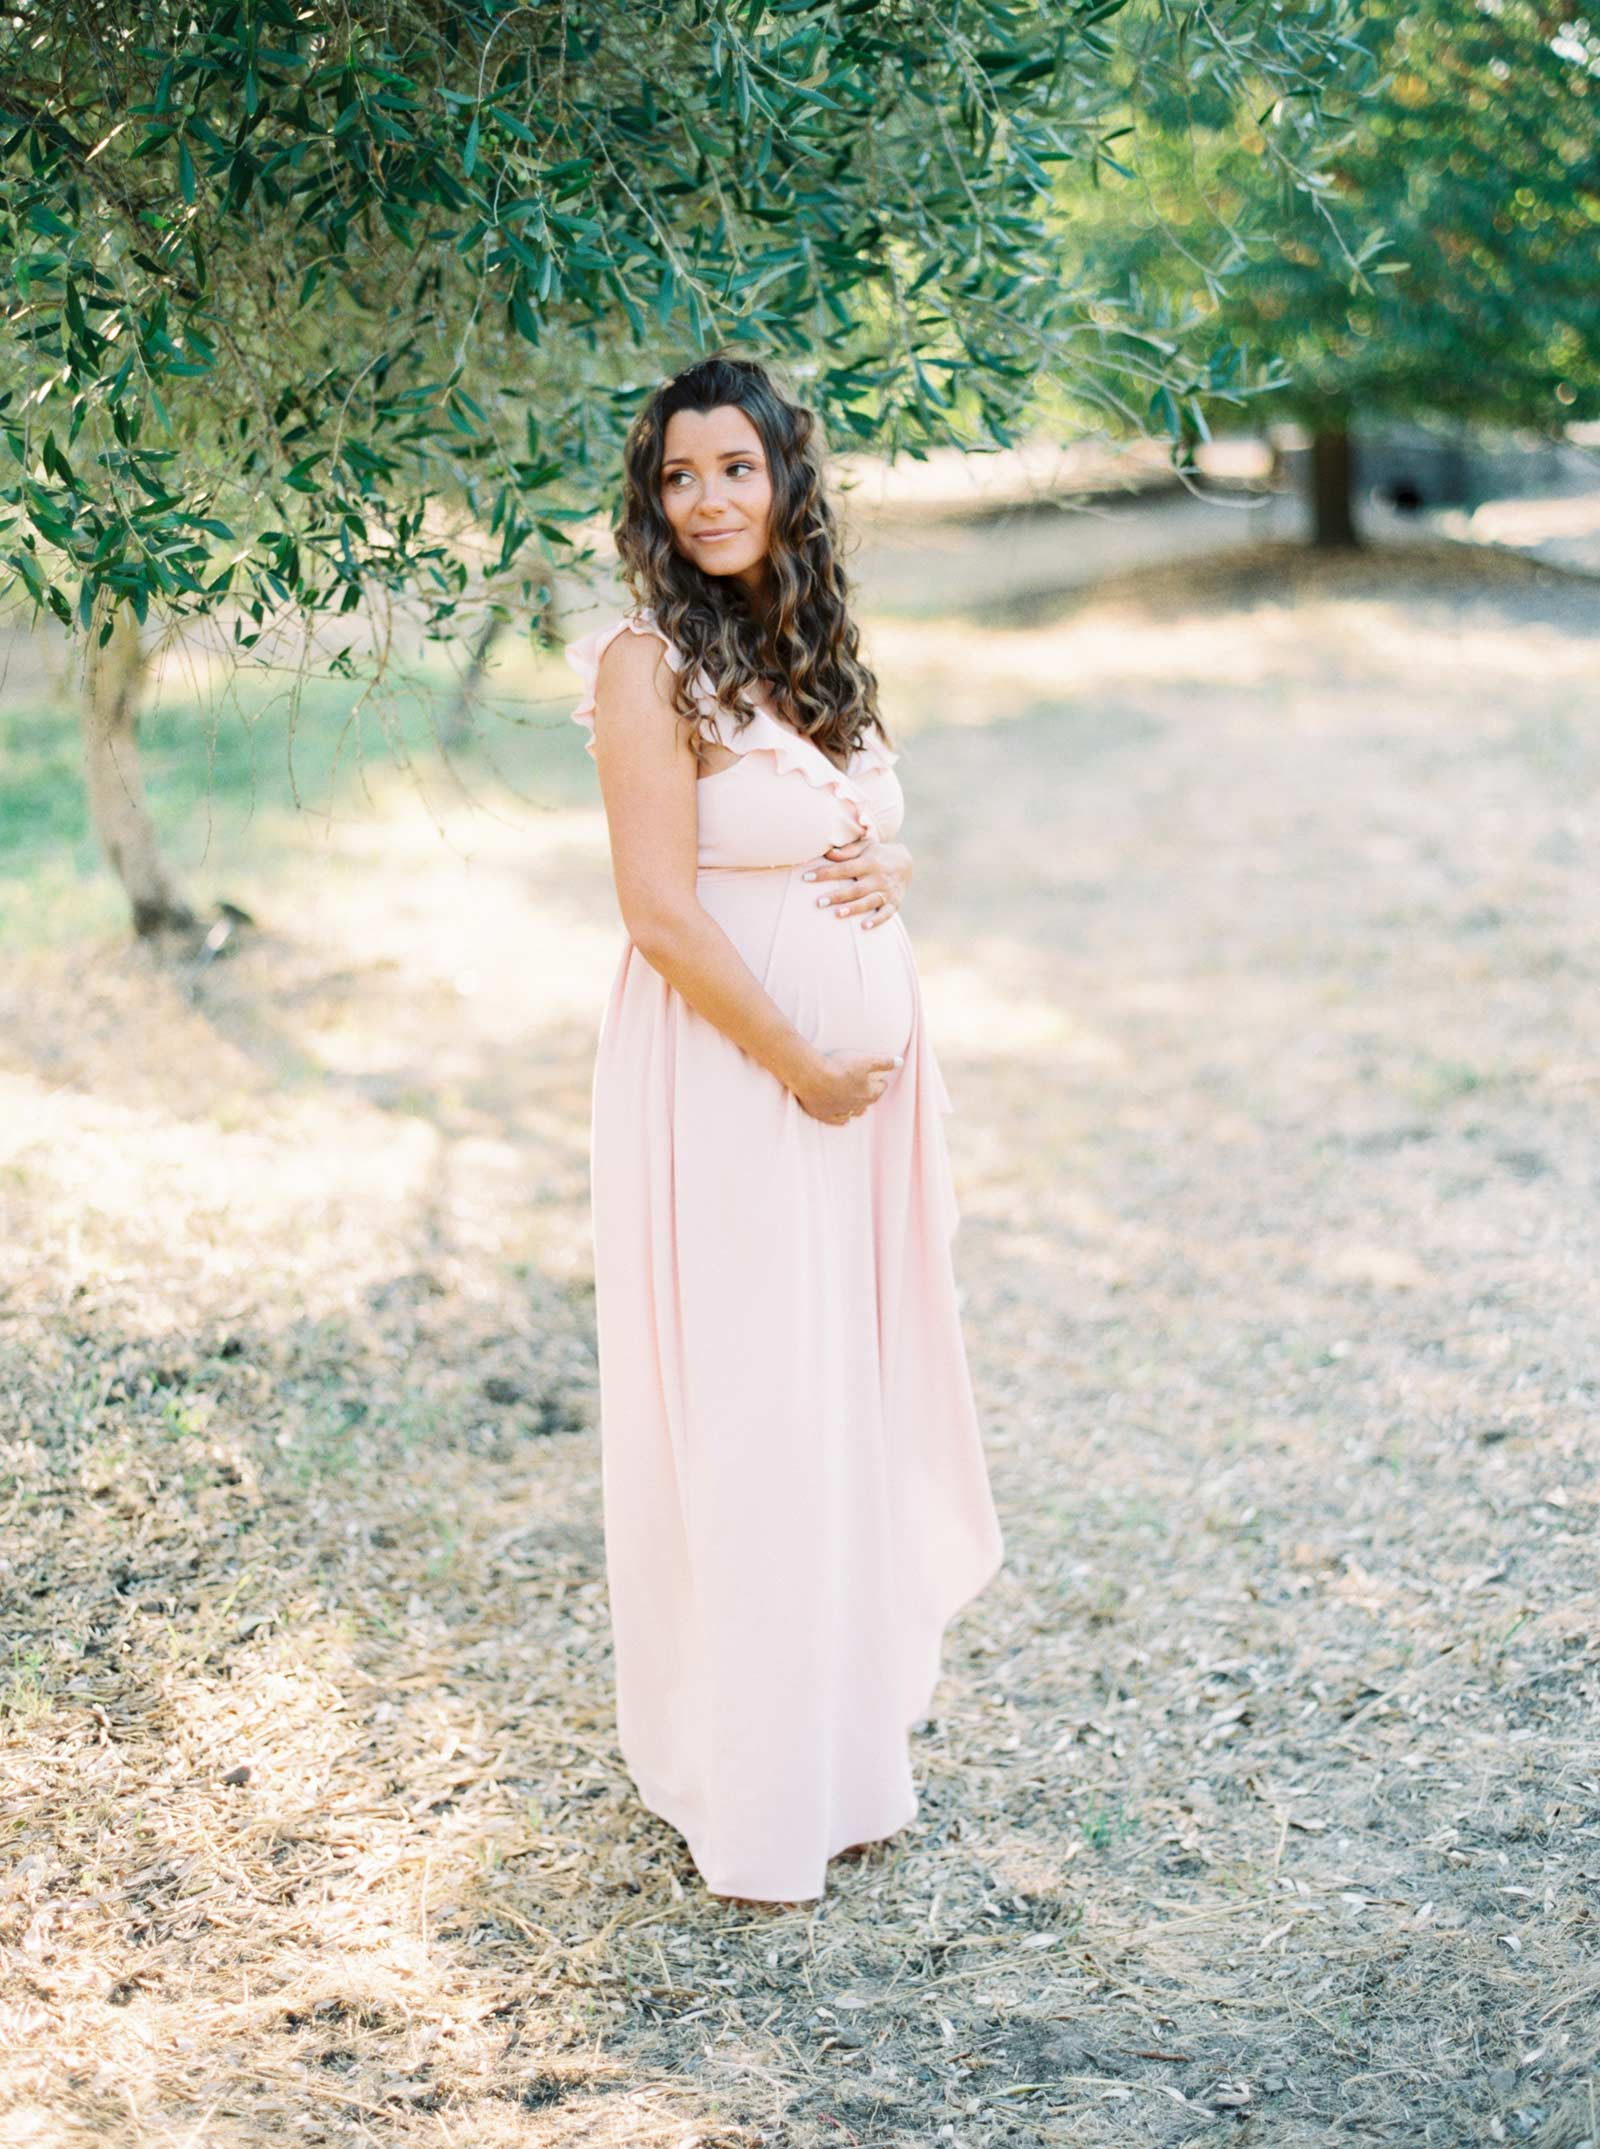 Mantazas-creek-winery-maternity-photos-004a.jpg